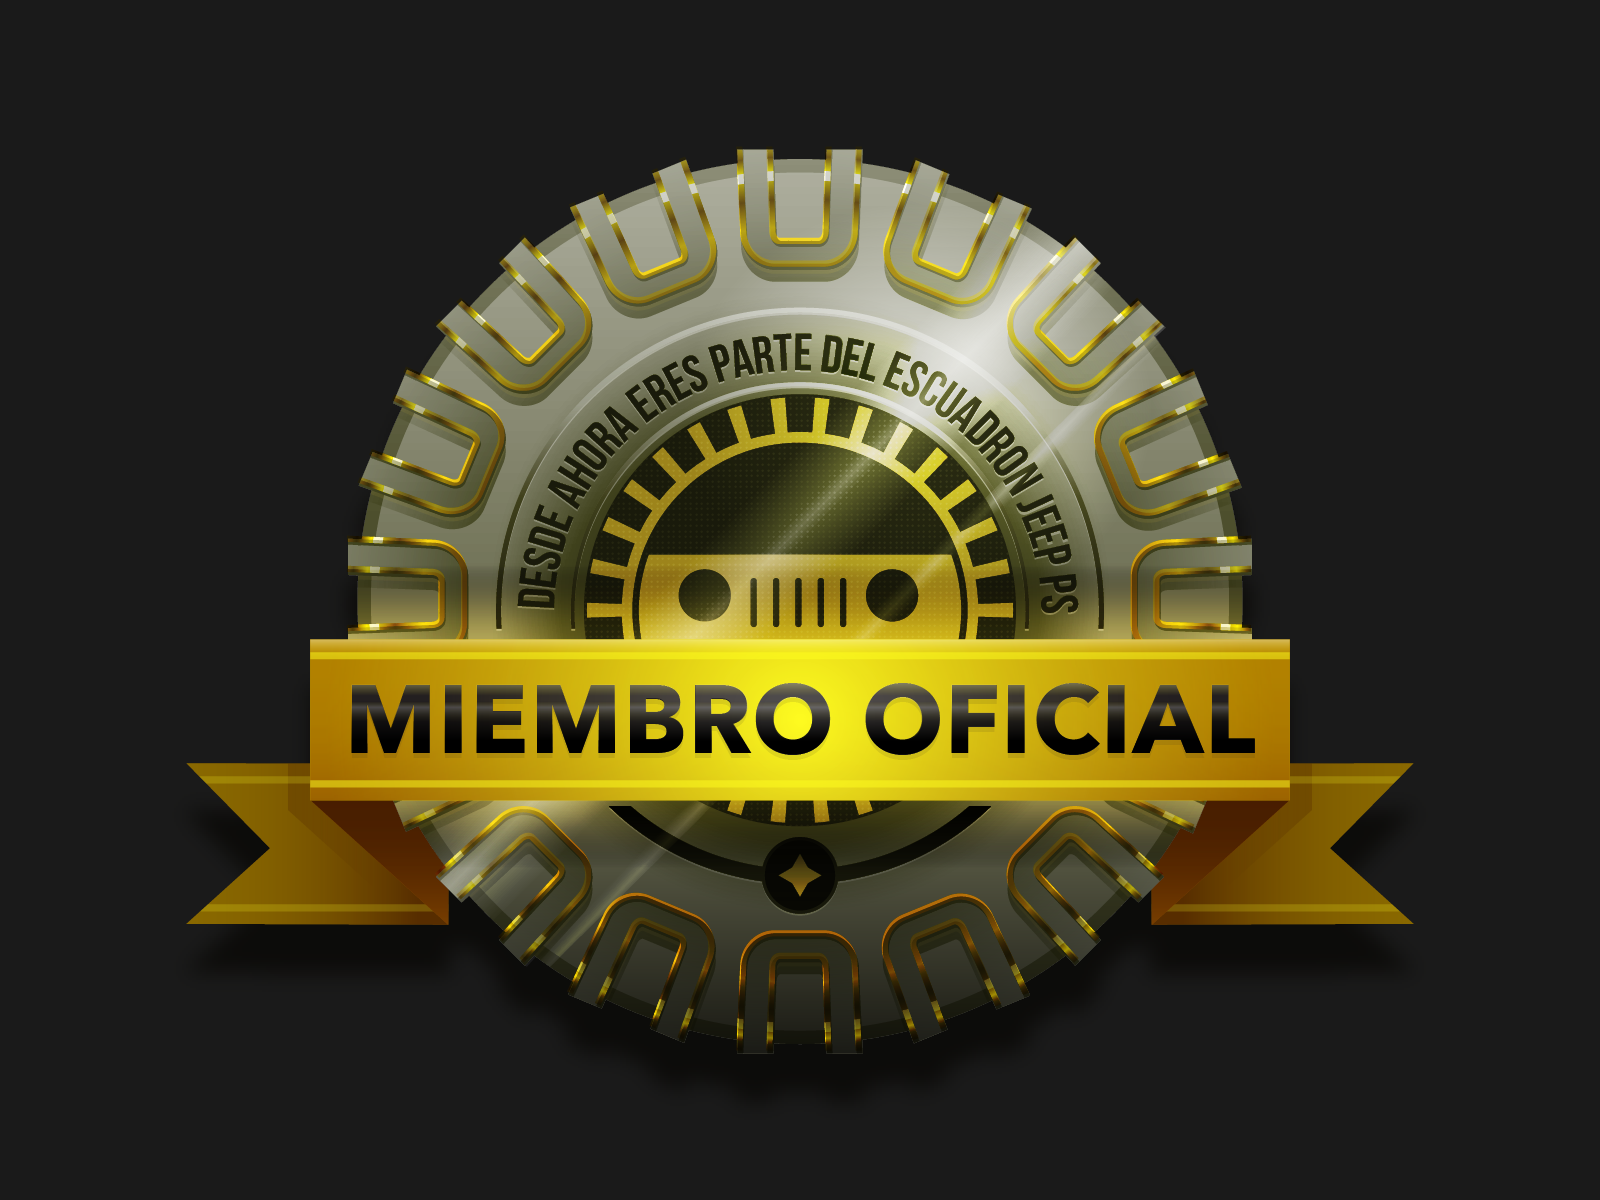 Jeep official member badge 2x